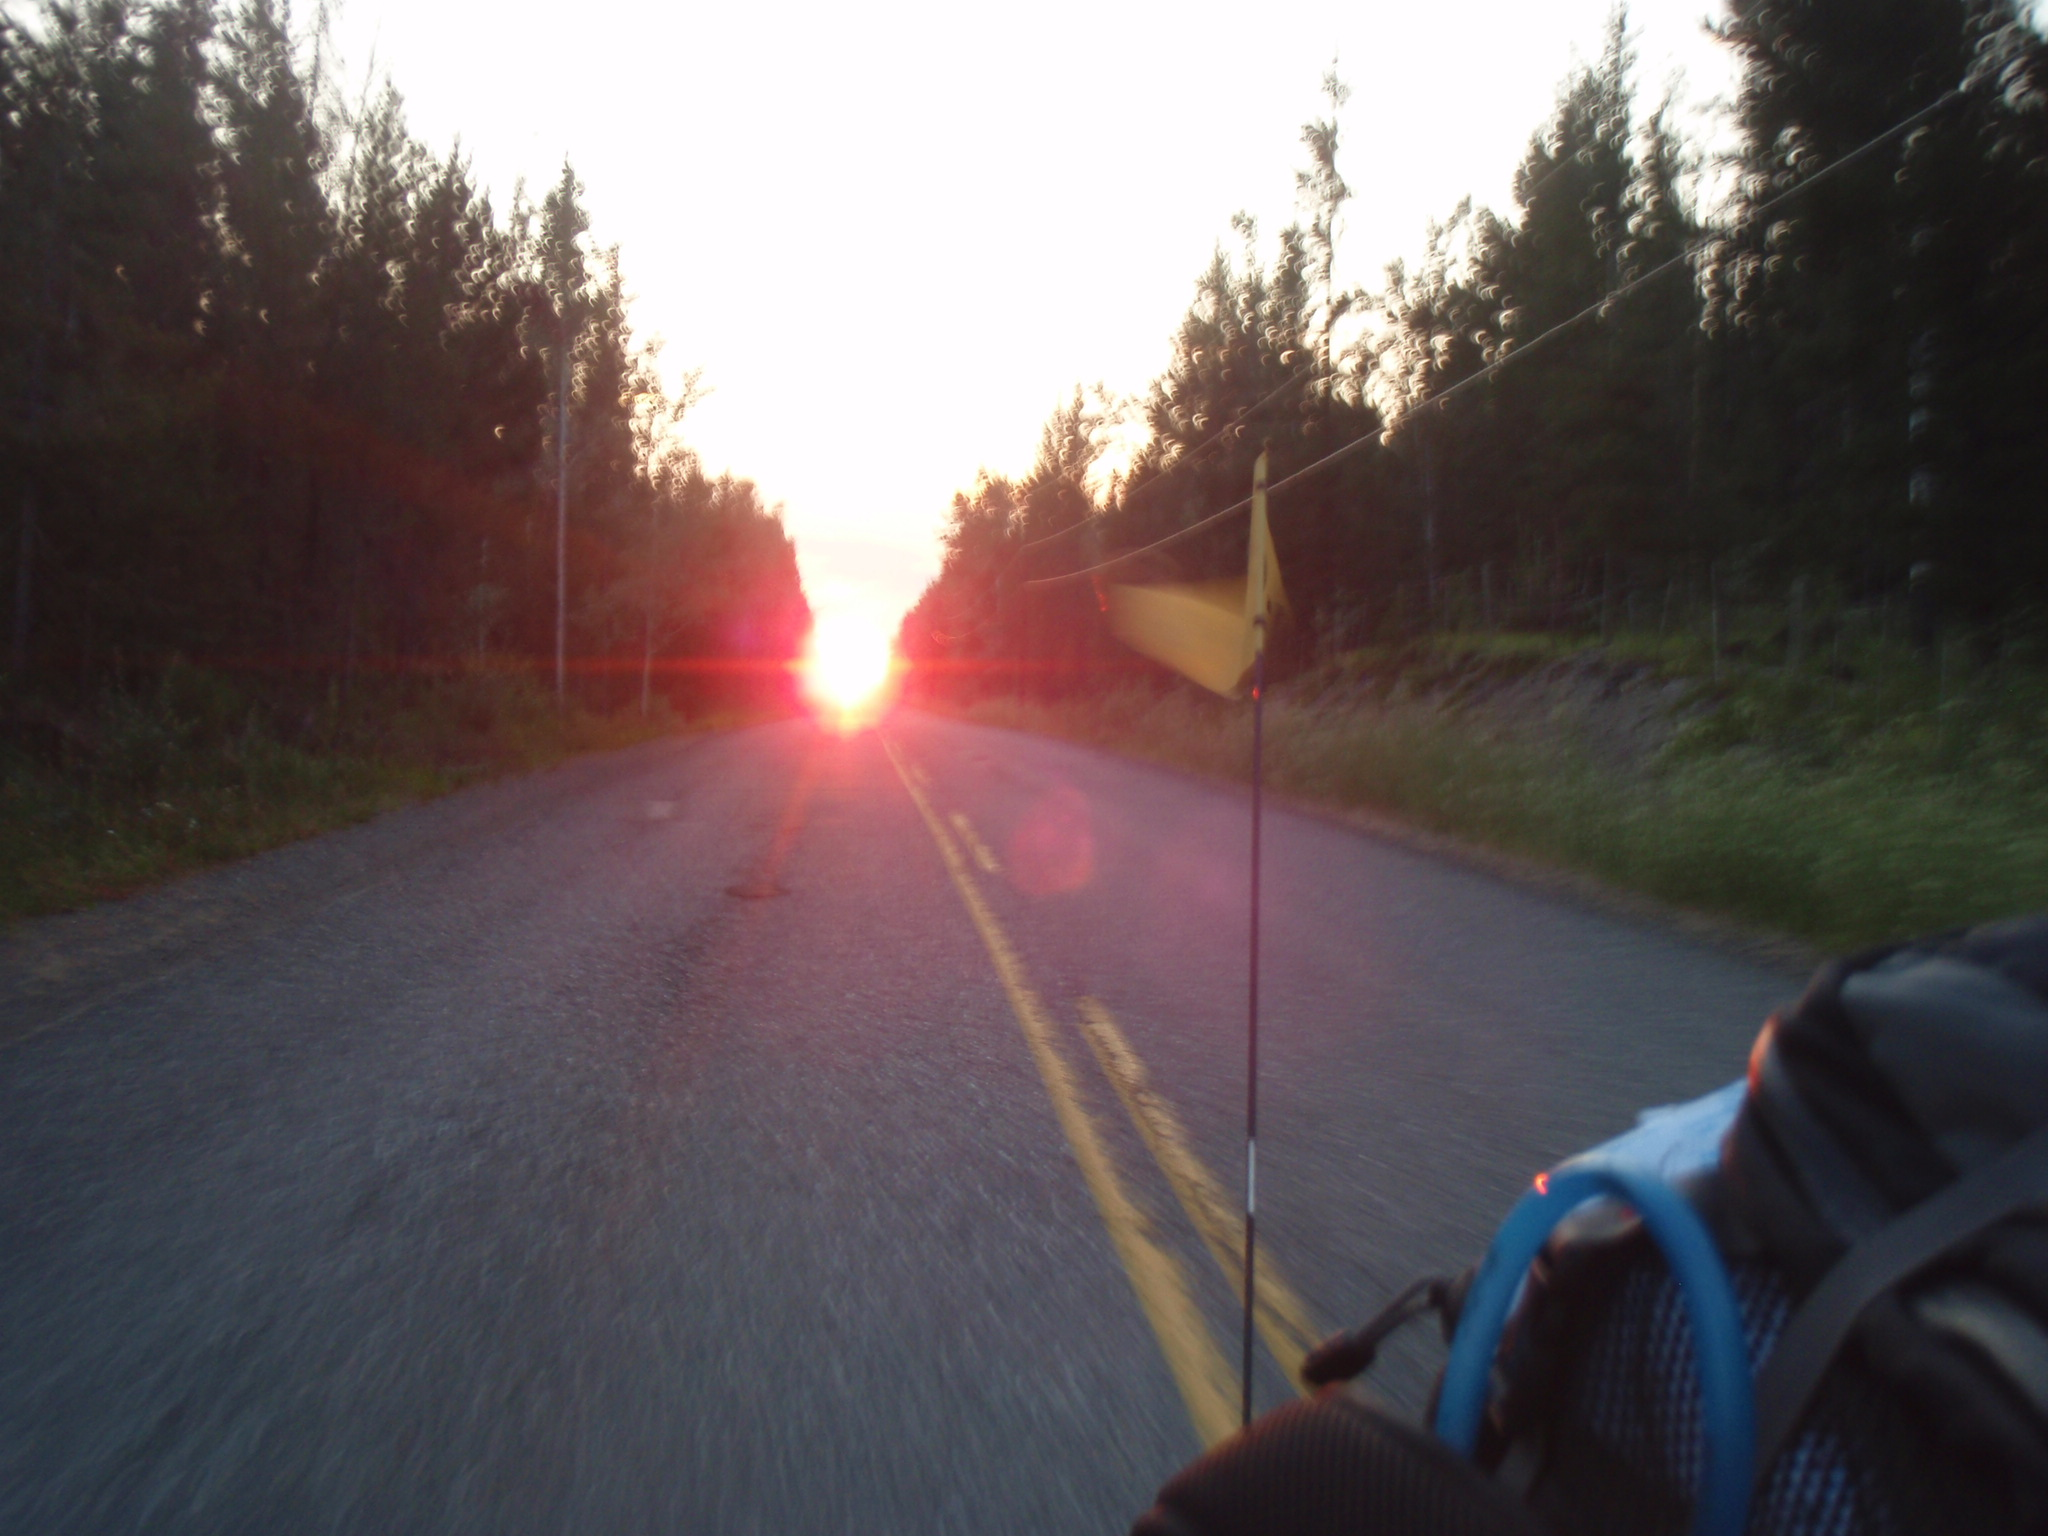 Sun about to set near Green Lake in rearview